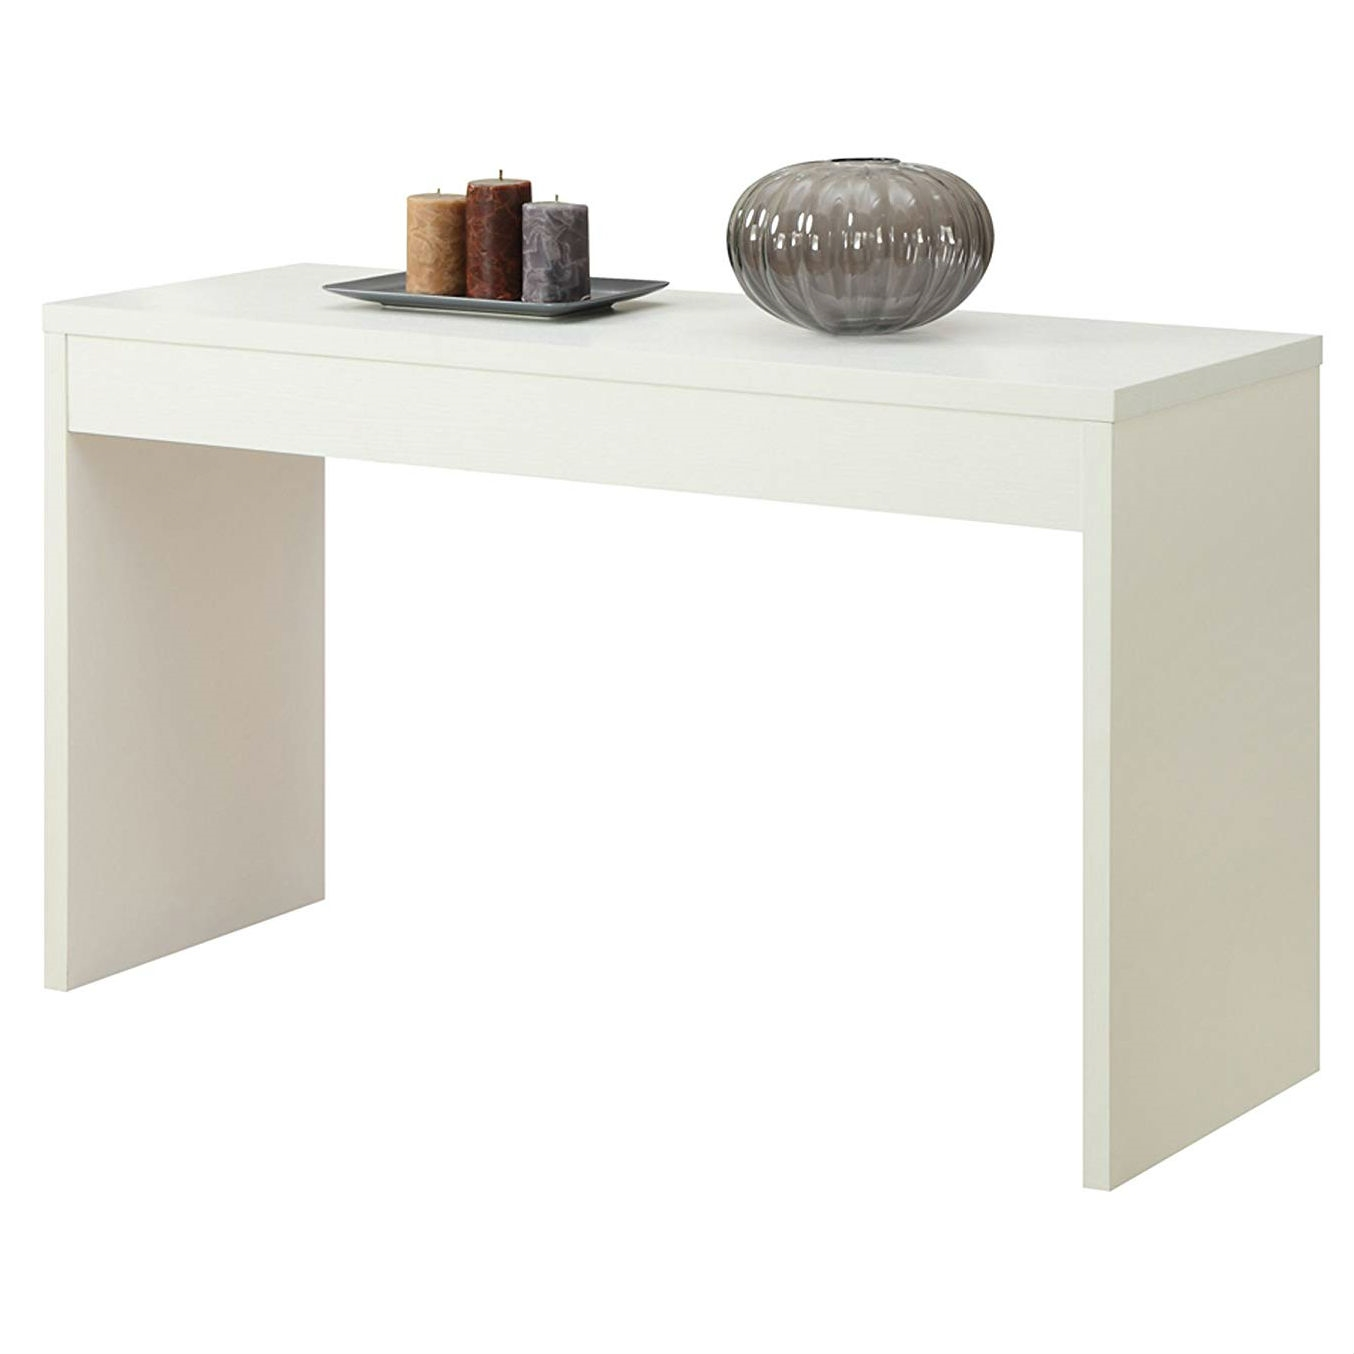 Picture of: White Sofa Table Modern Entryway Living Room Console Table Fastfurnishings Com